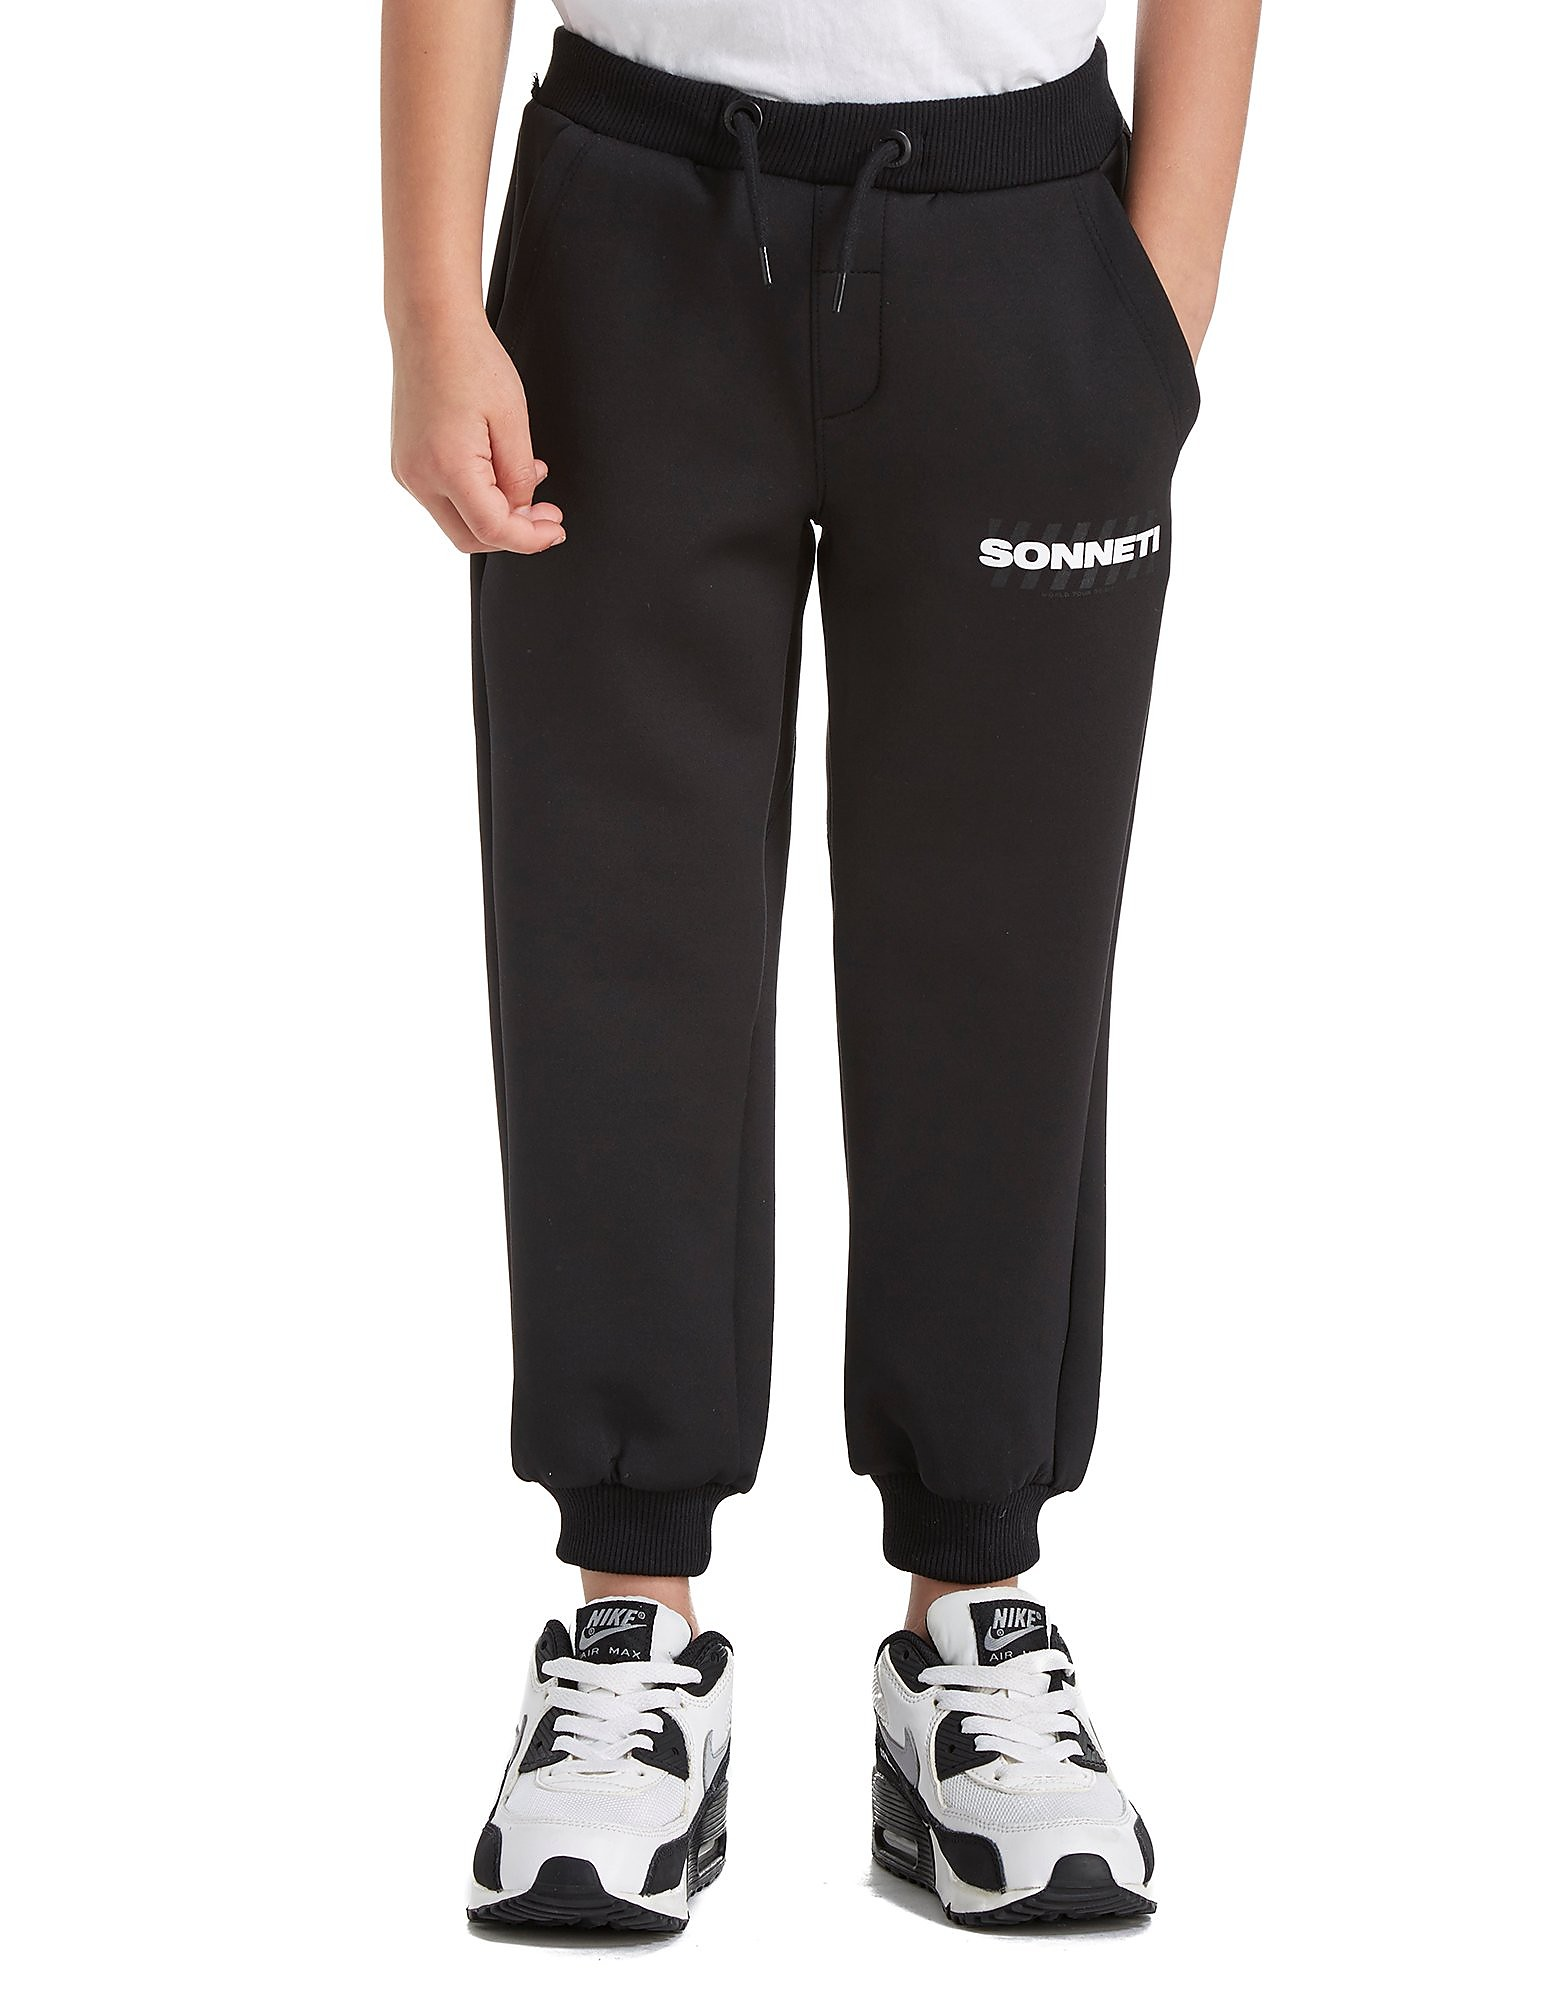 Sonneti Droid Track Pants Childrens